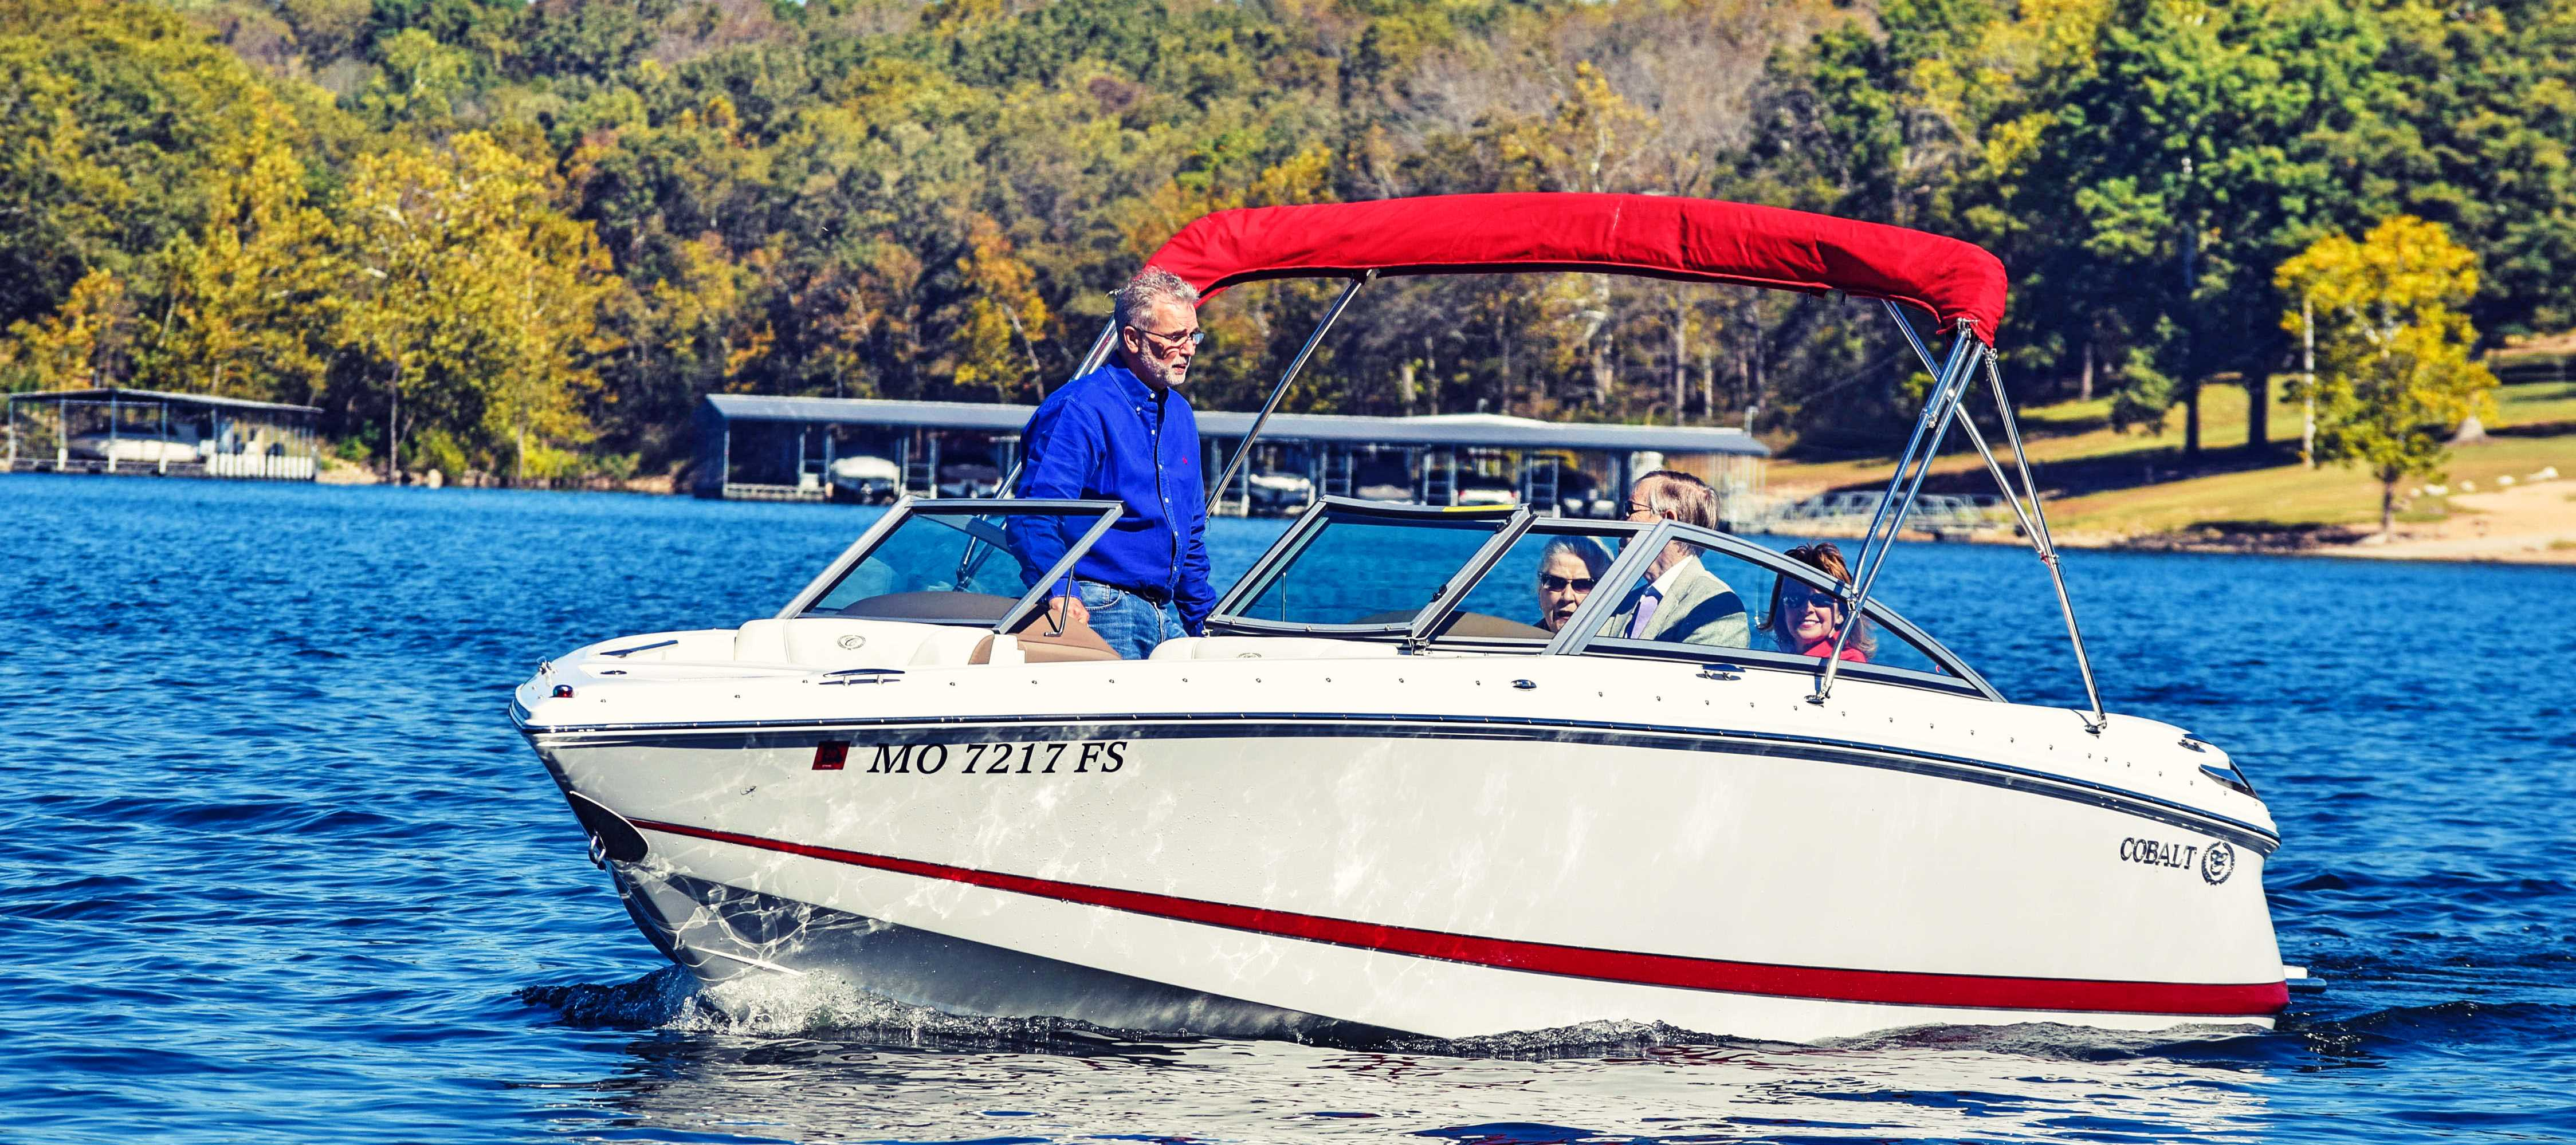 Lake Activities - Buying A House On Table Rock Lake